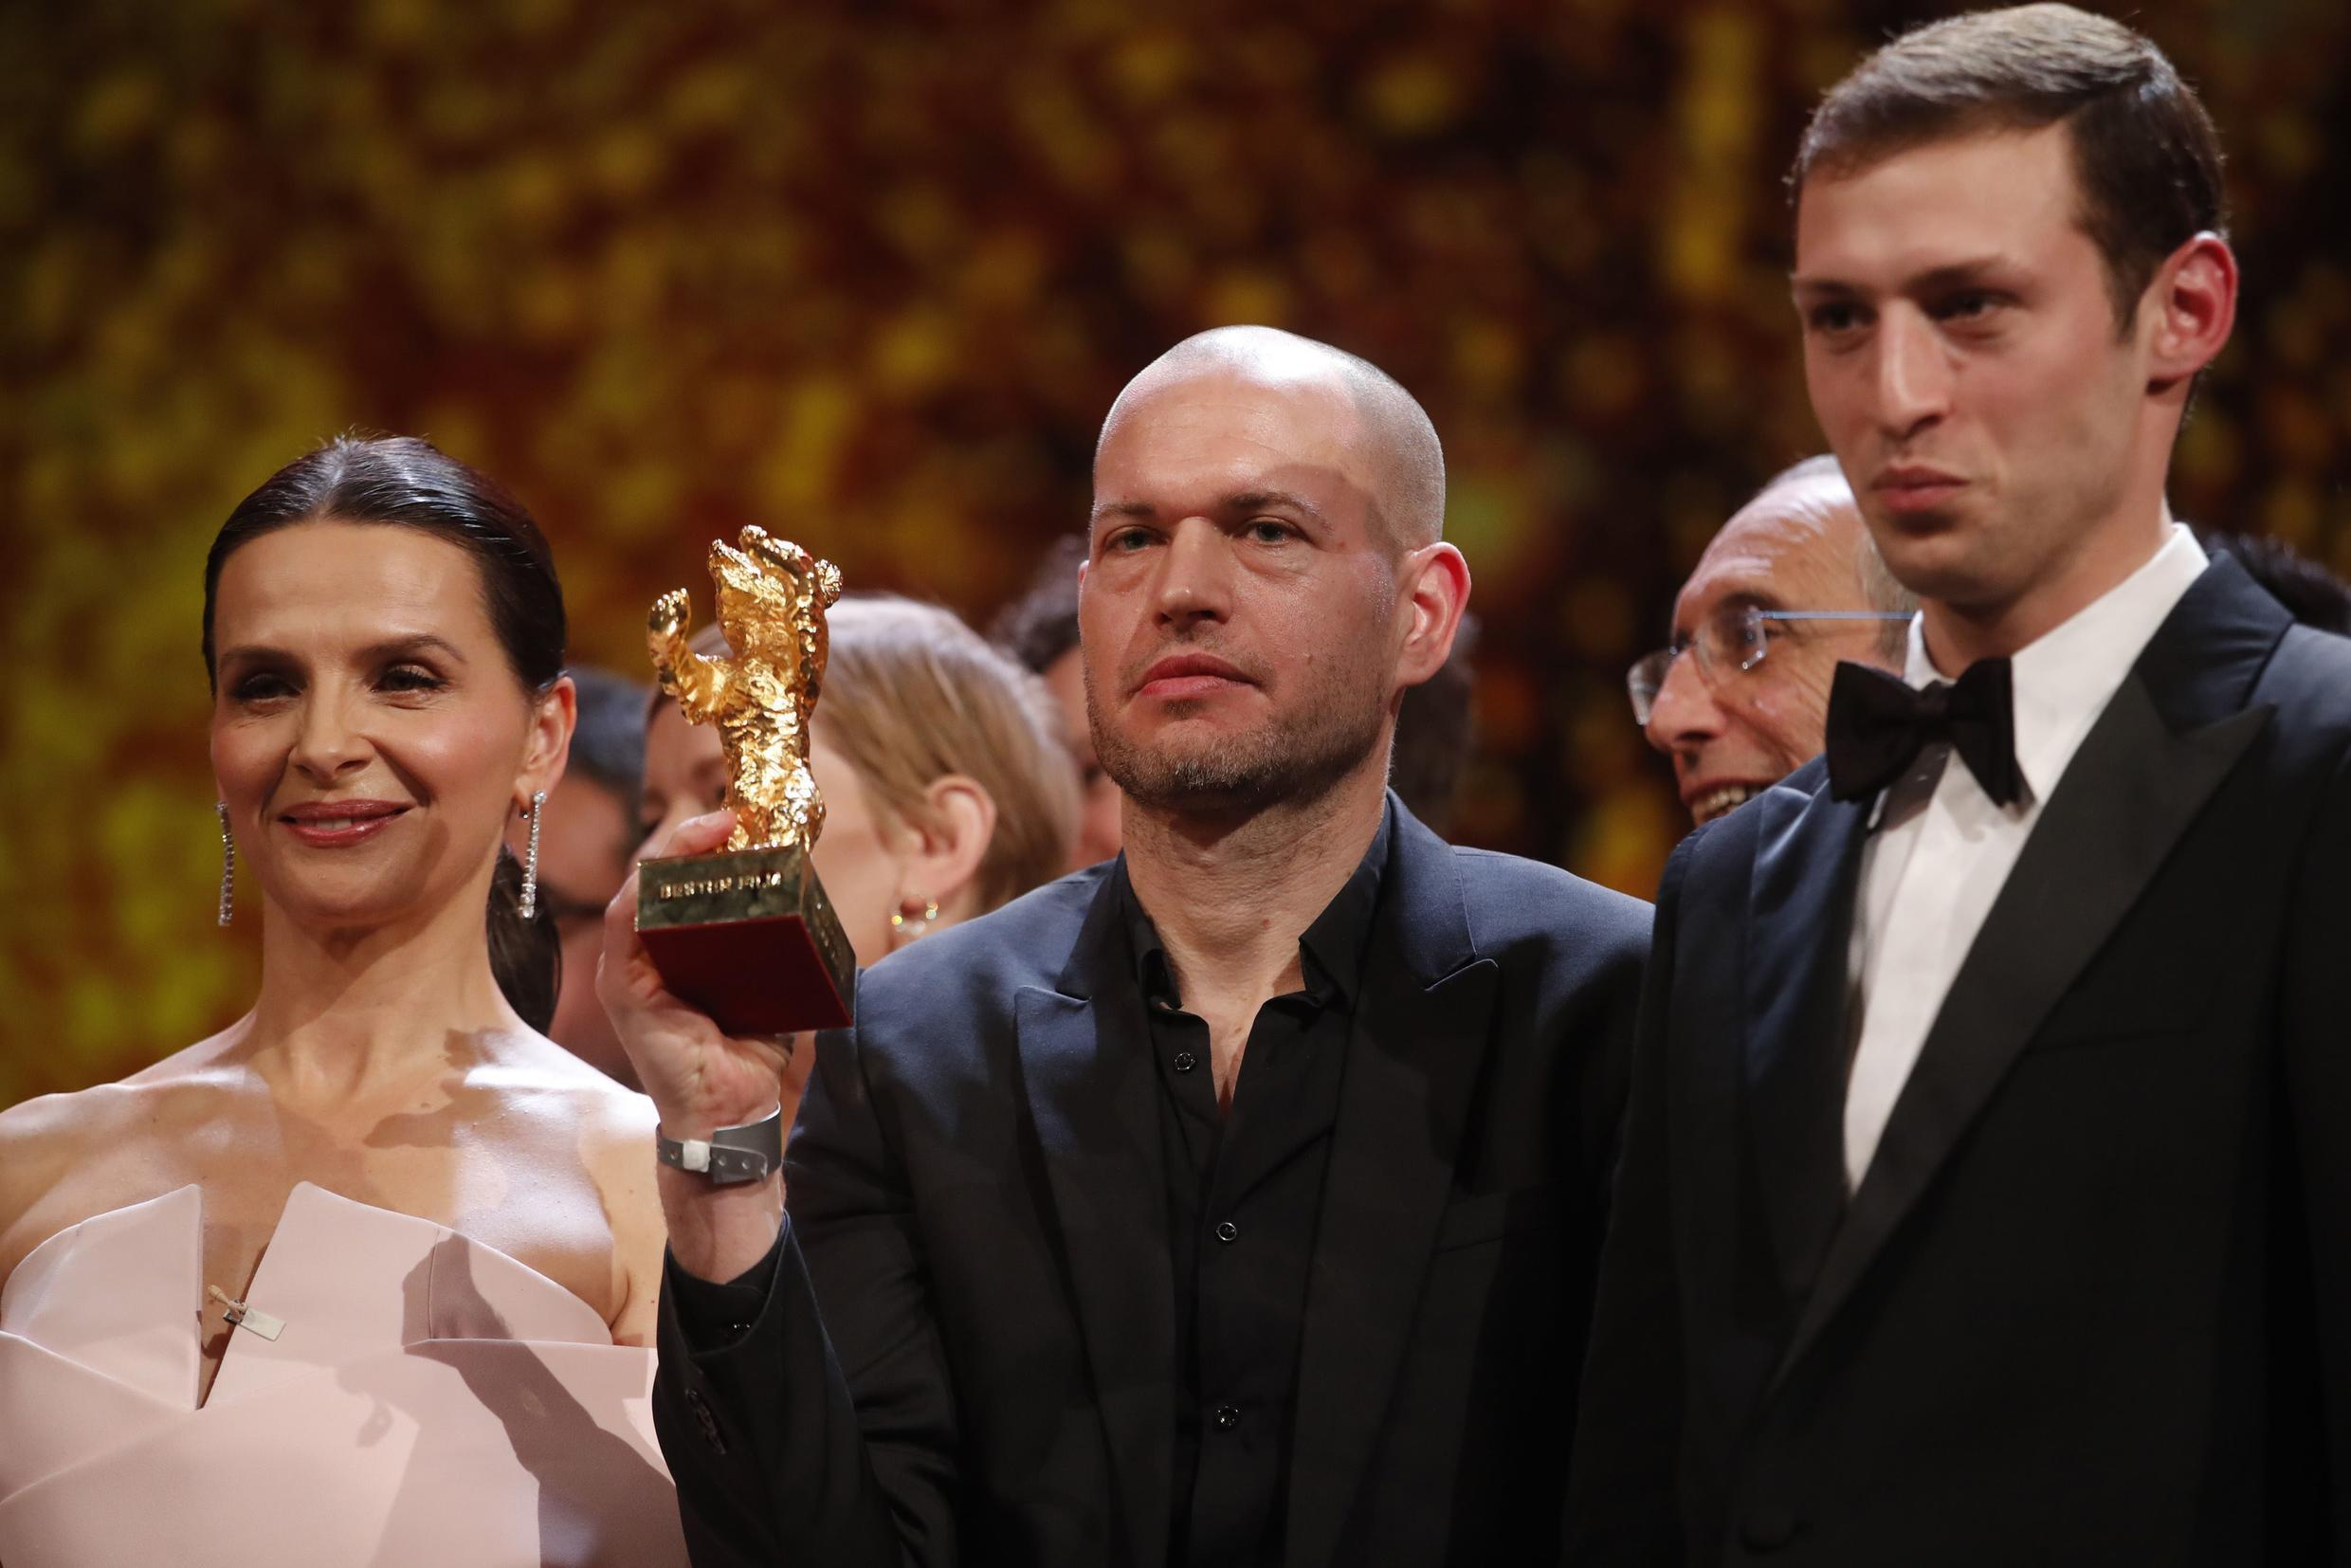 Director Nadav Lapid (c) with the Berlinale Golden Bear flanked by jury president, French actress, Juliette Binoche (l) and Synonymes' leading actor, Tom Mercier (r), 17 February 2019